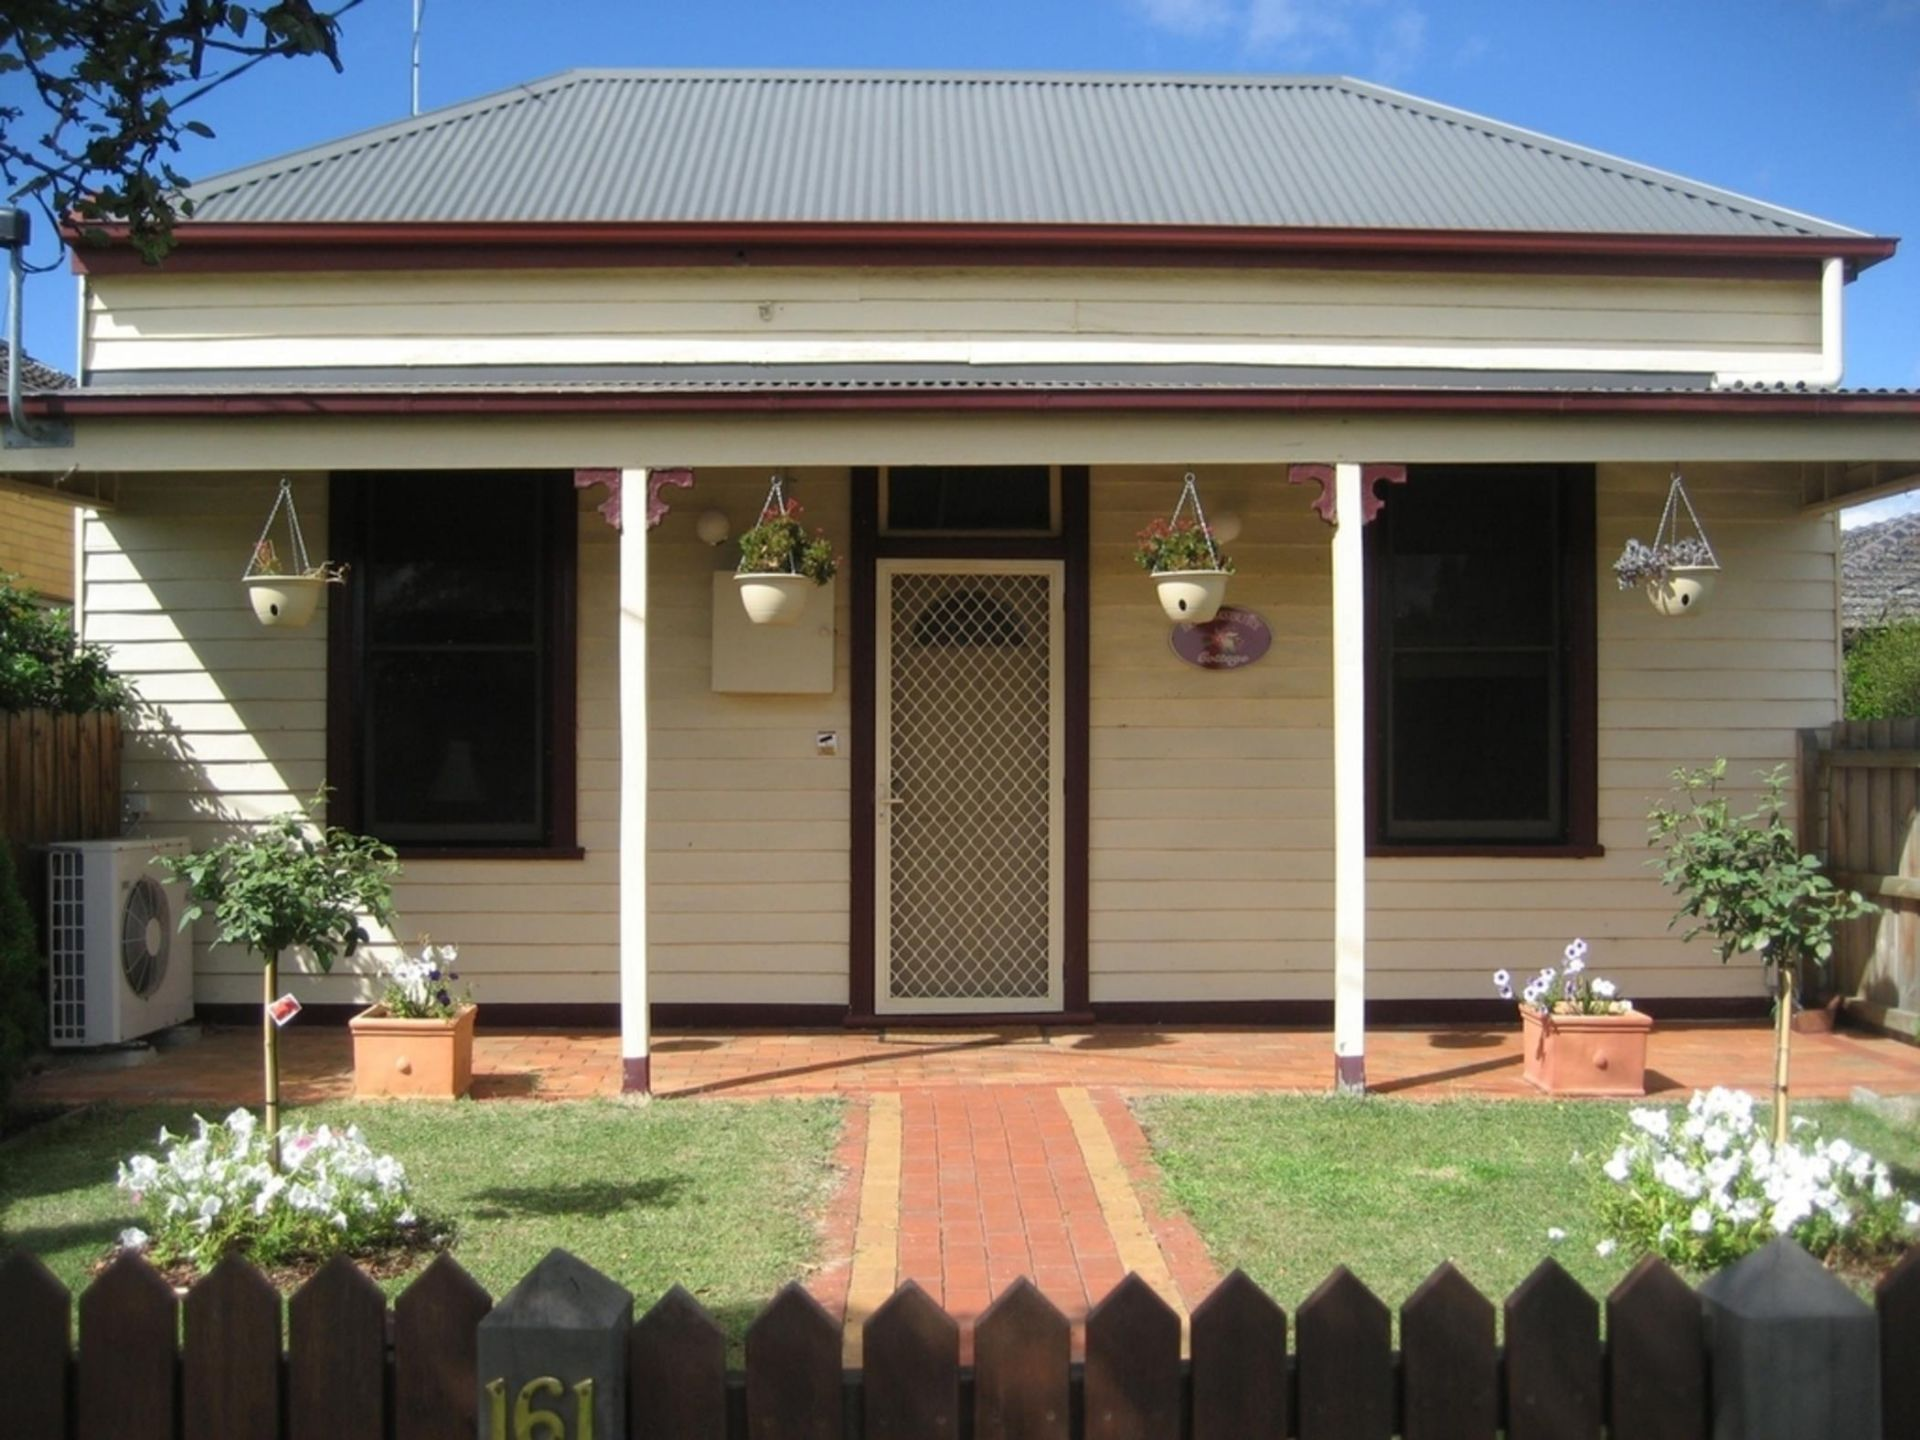 Bairnsdale : Bloomsbury Cottage short-stay accommodation and car parking spaces